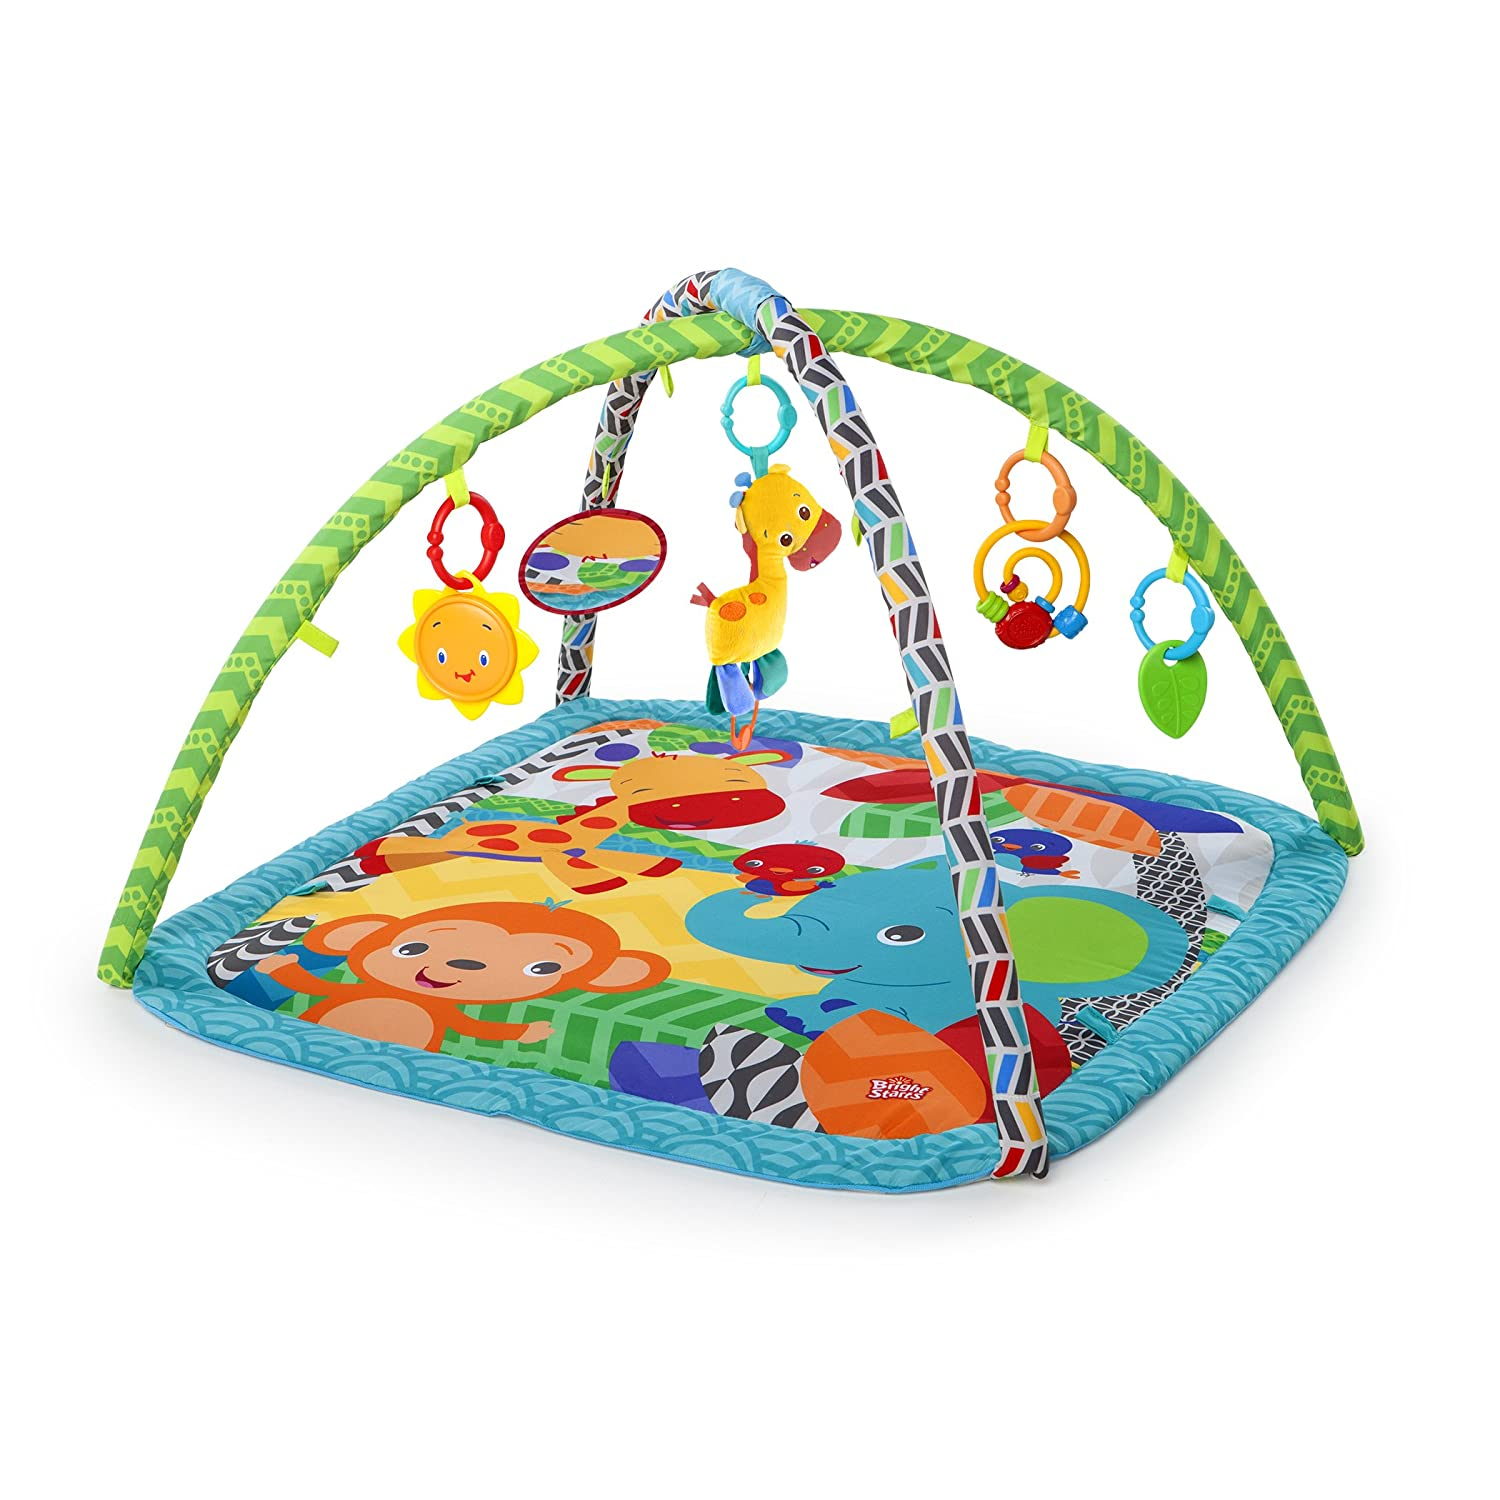 Bright Starts Zippy Zoo Activity Gym 52169